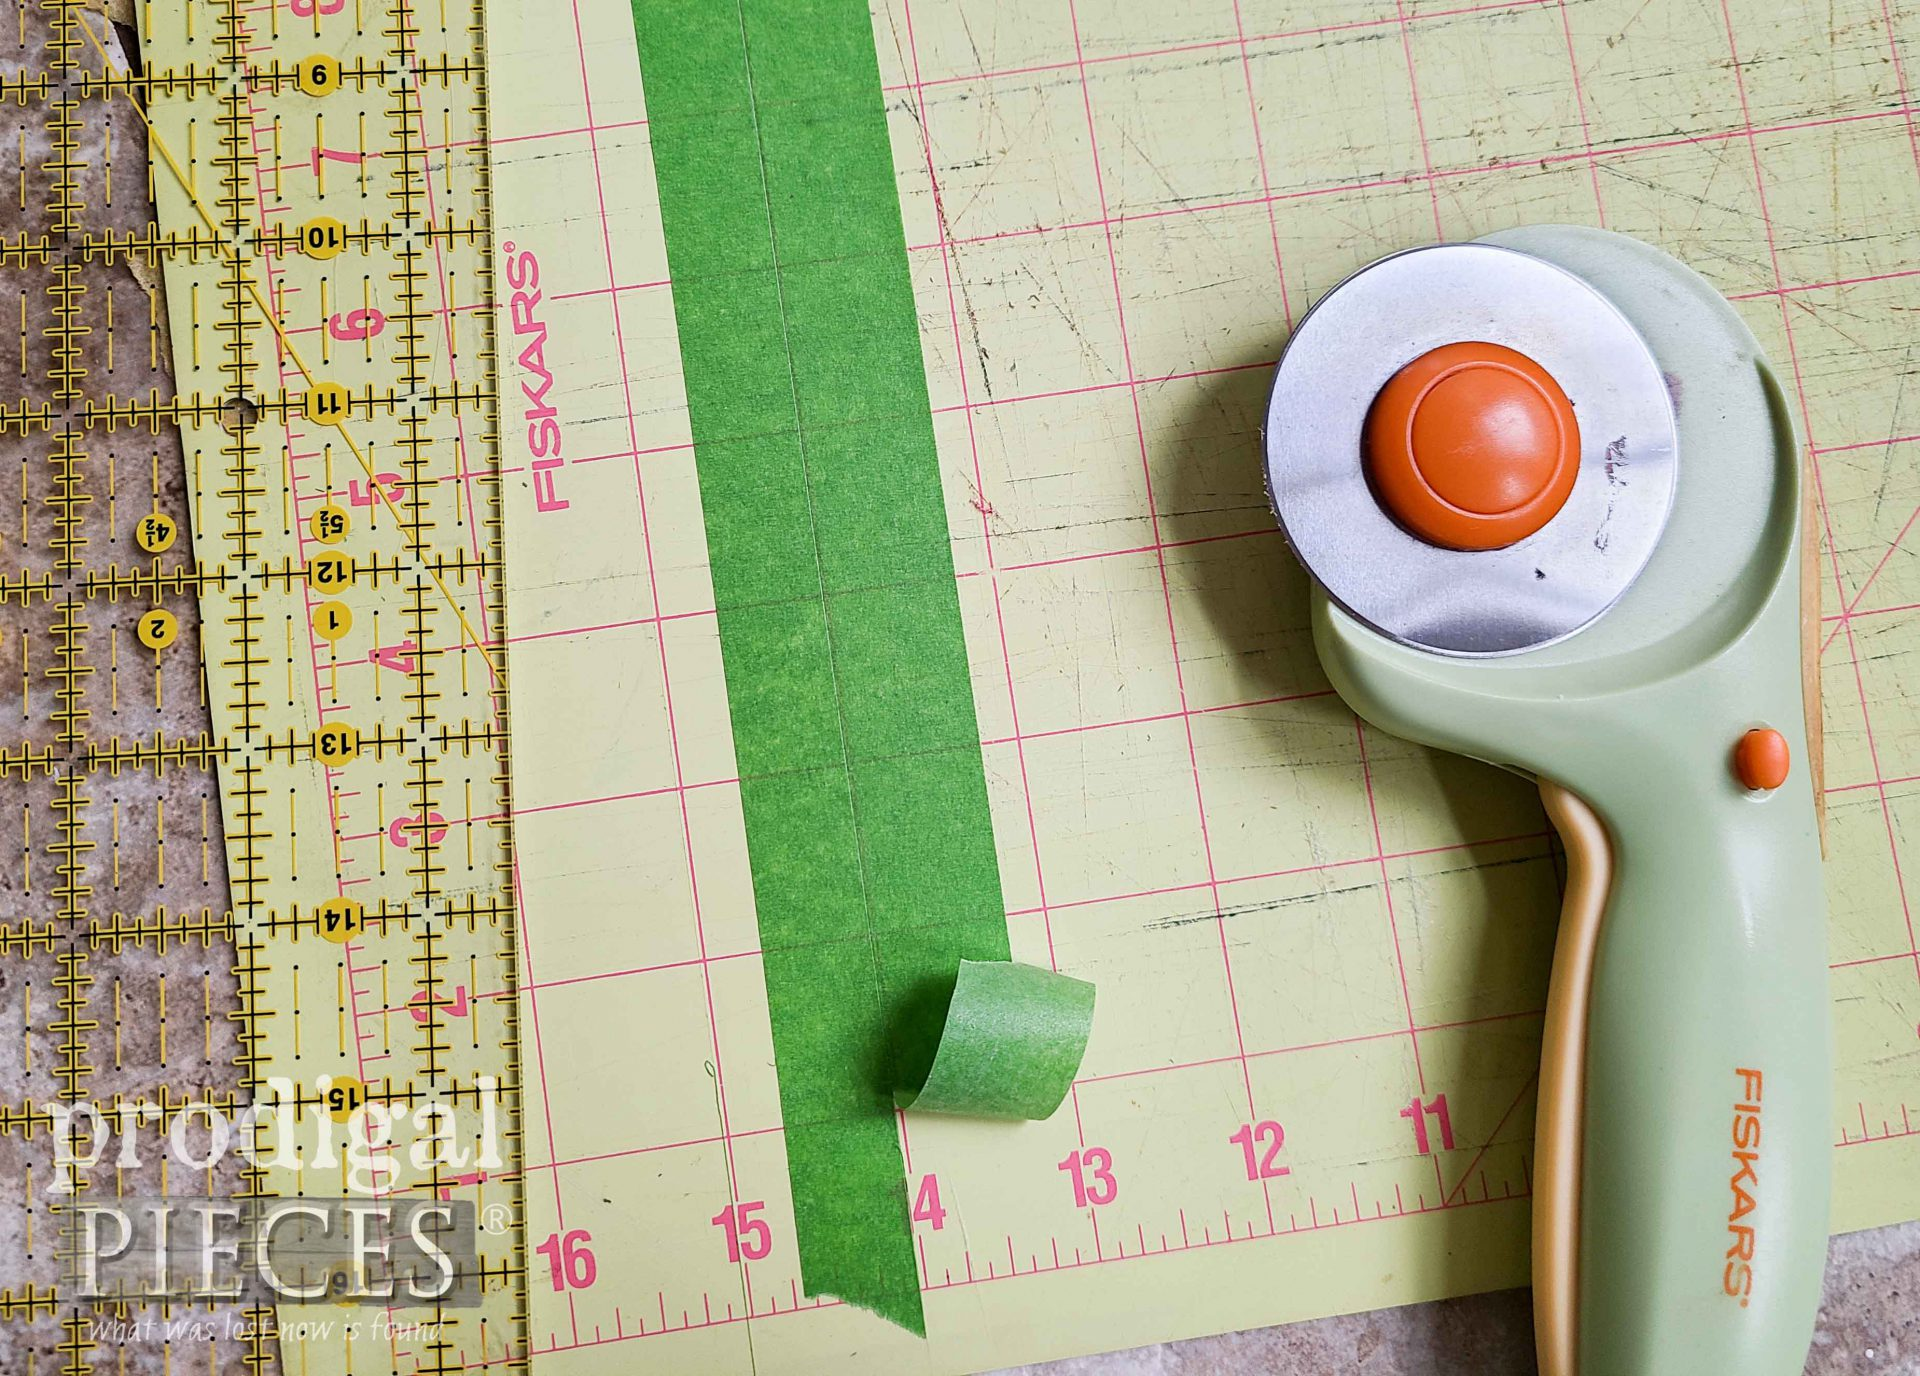 Cut Painter's Tape with Rotary Cutter | Prodigal Pieces | prodigalpieces.com #prodigalpieces